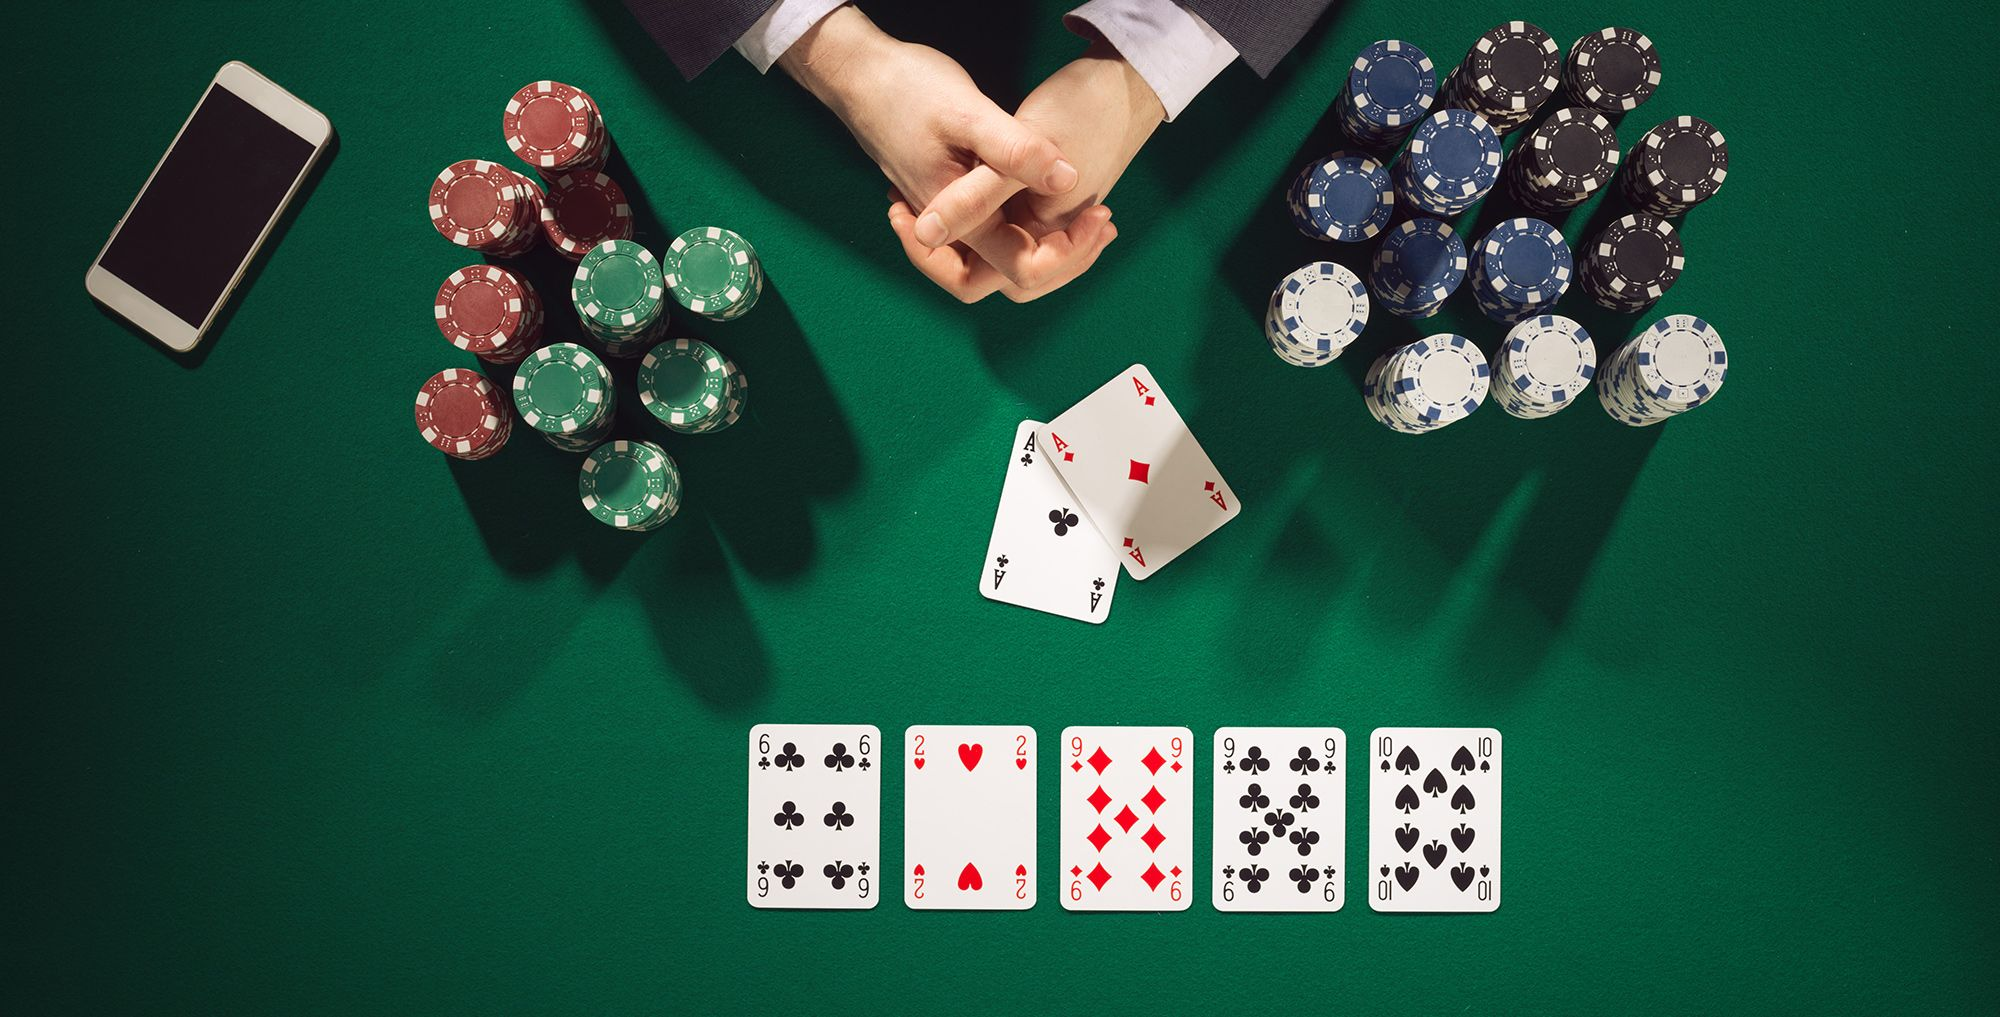 5 Important Guidelines to Clinch More cash found in Sports Betting